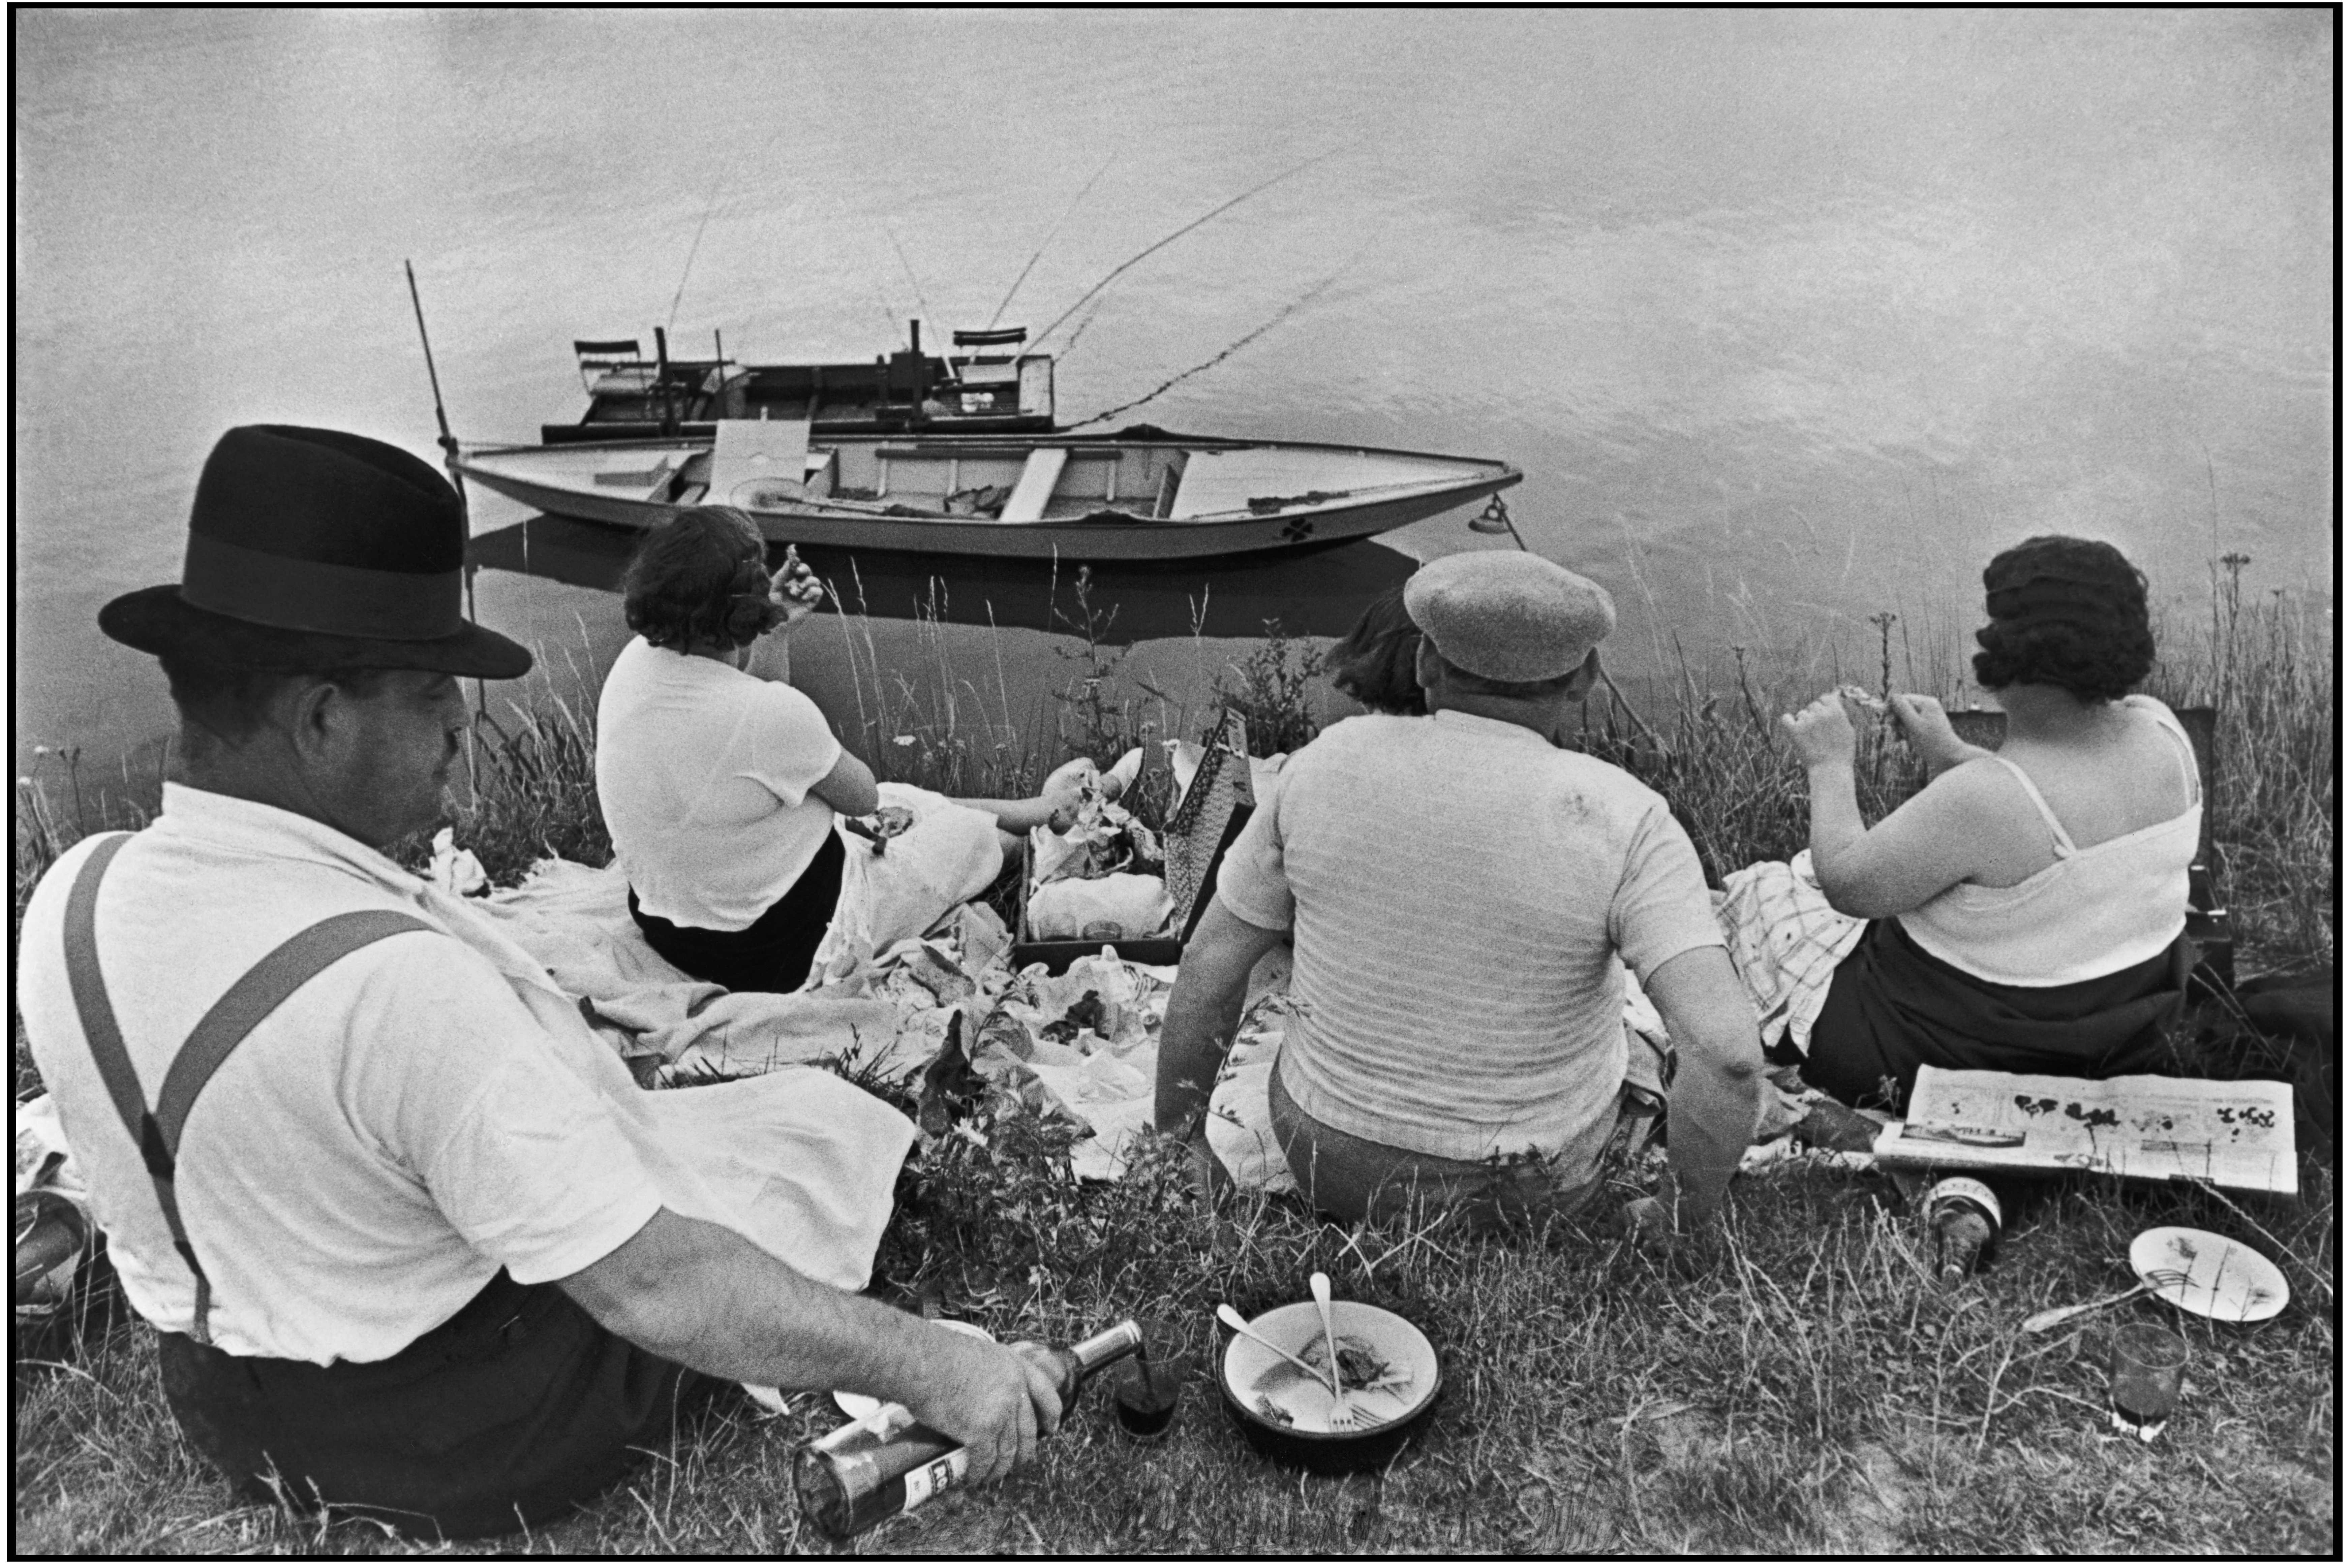 Sunday on the Banks of the River Seine, 1938